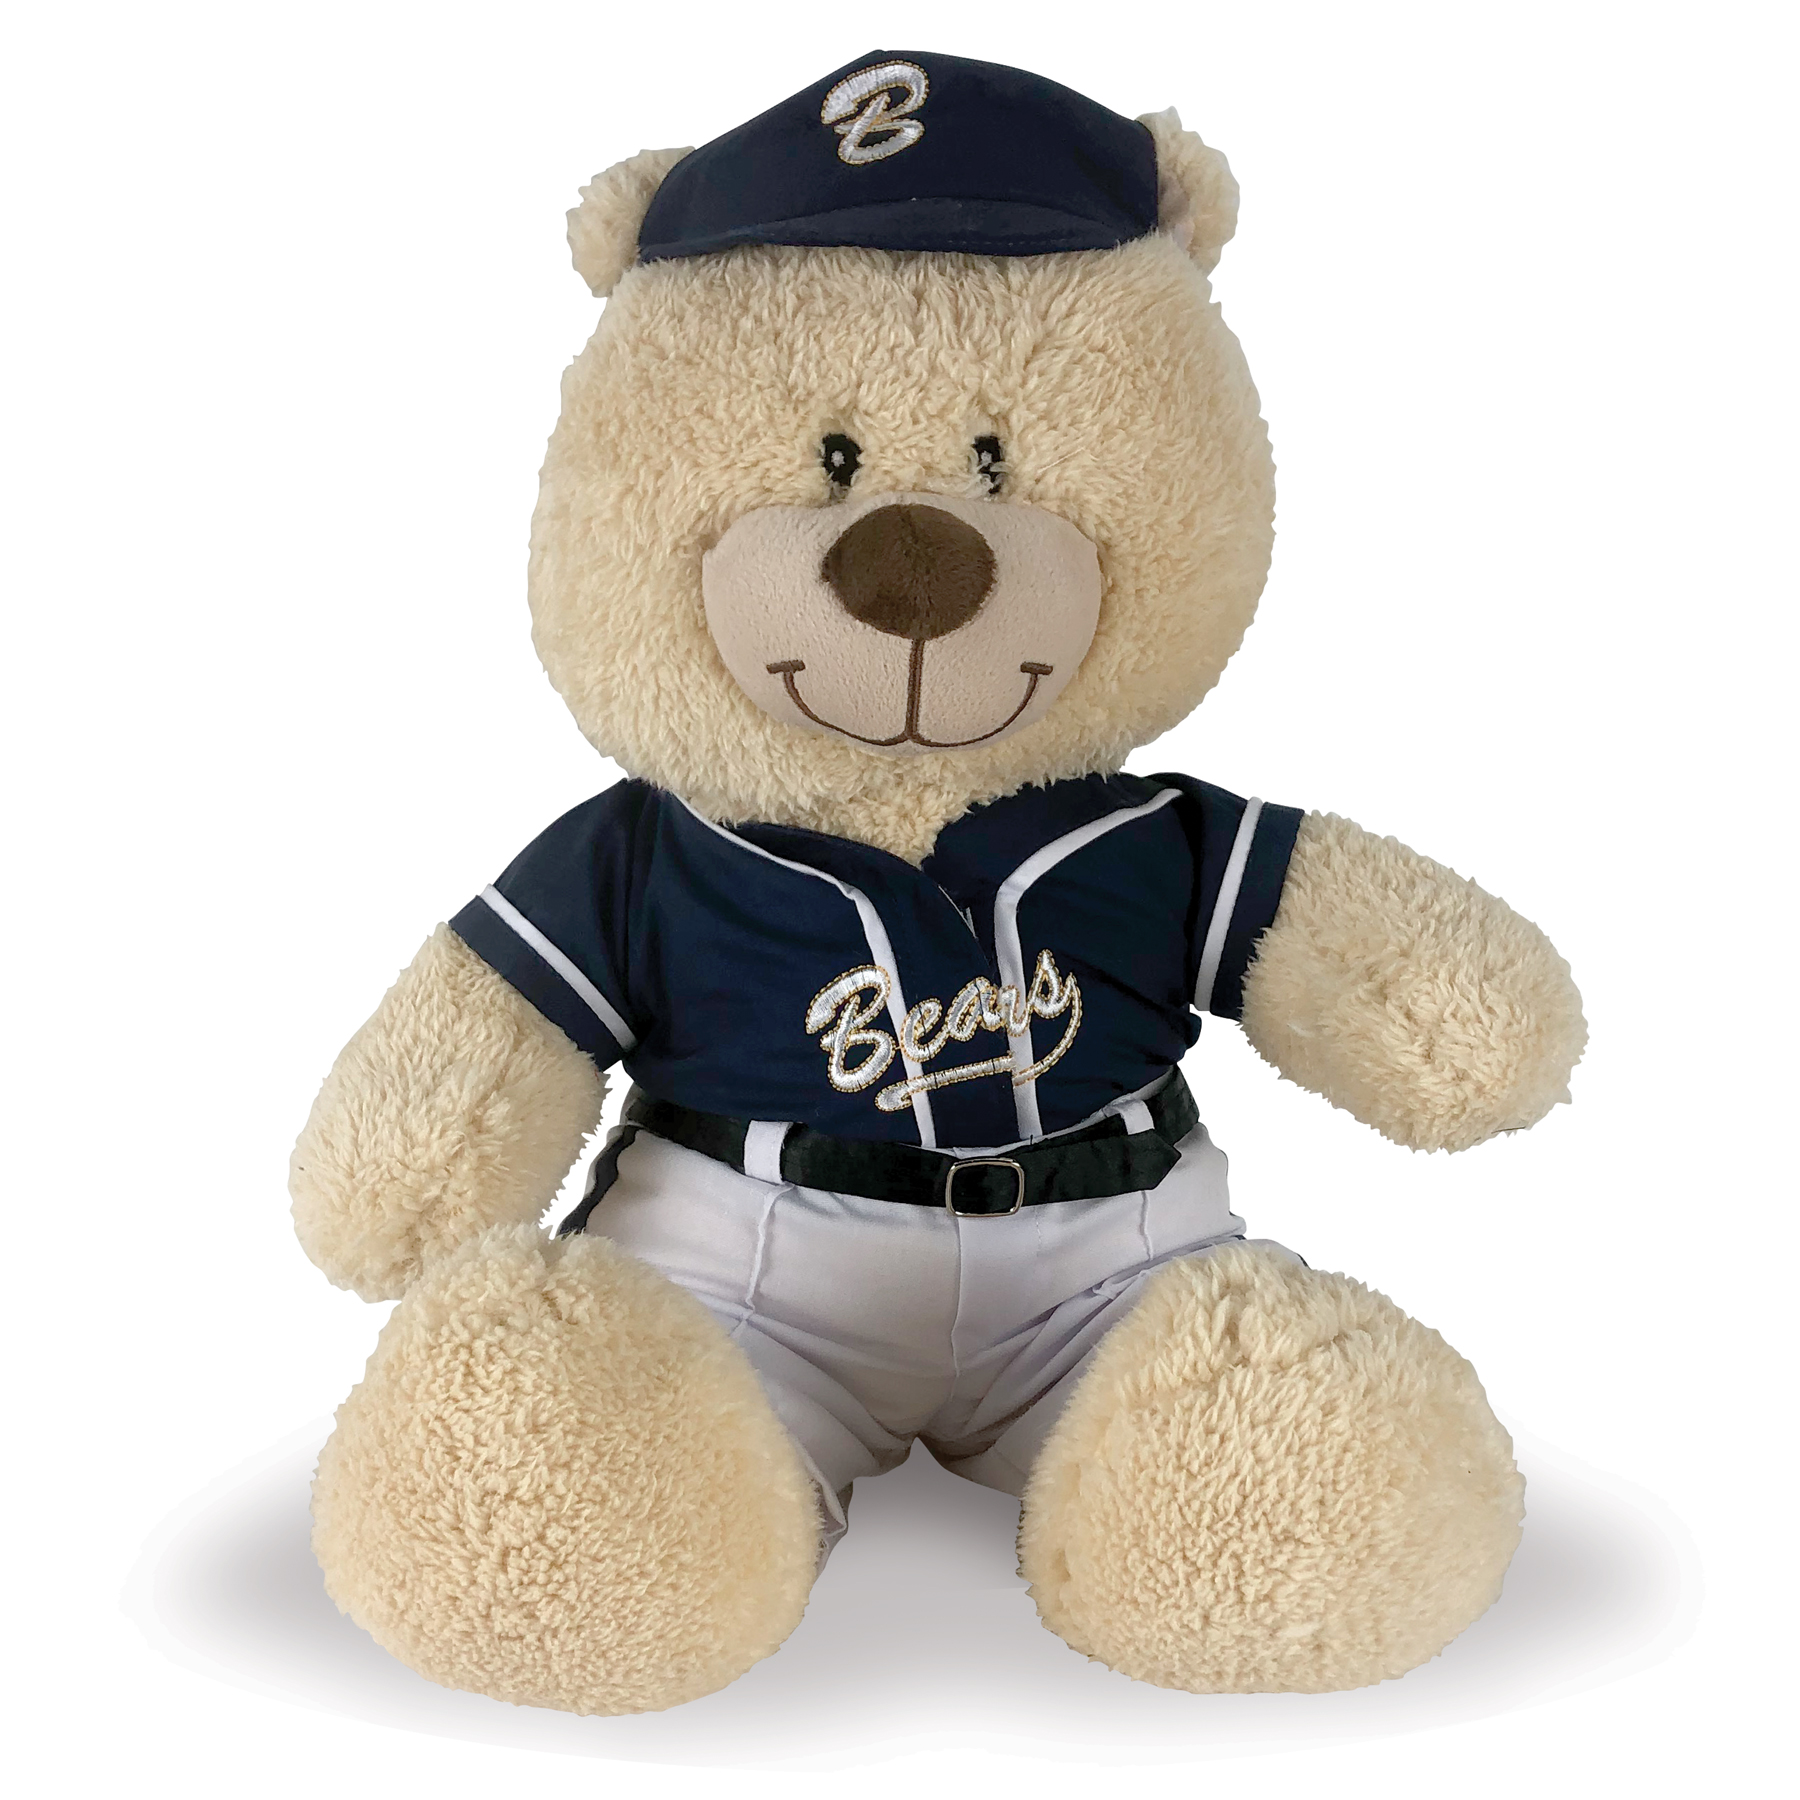 Stuffed Animal Outfits | Teddy Bear Baseball Uniform